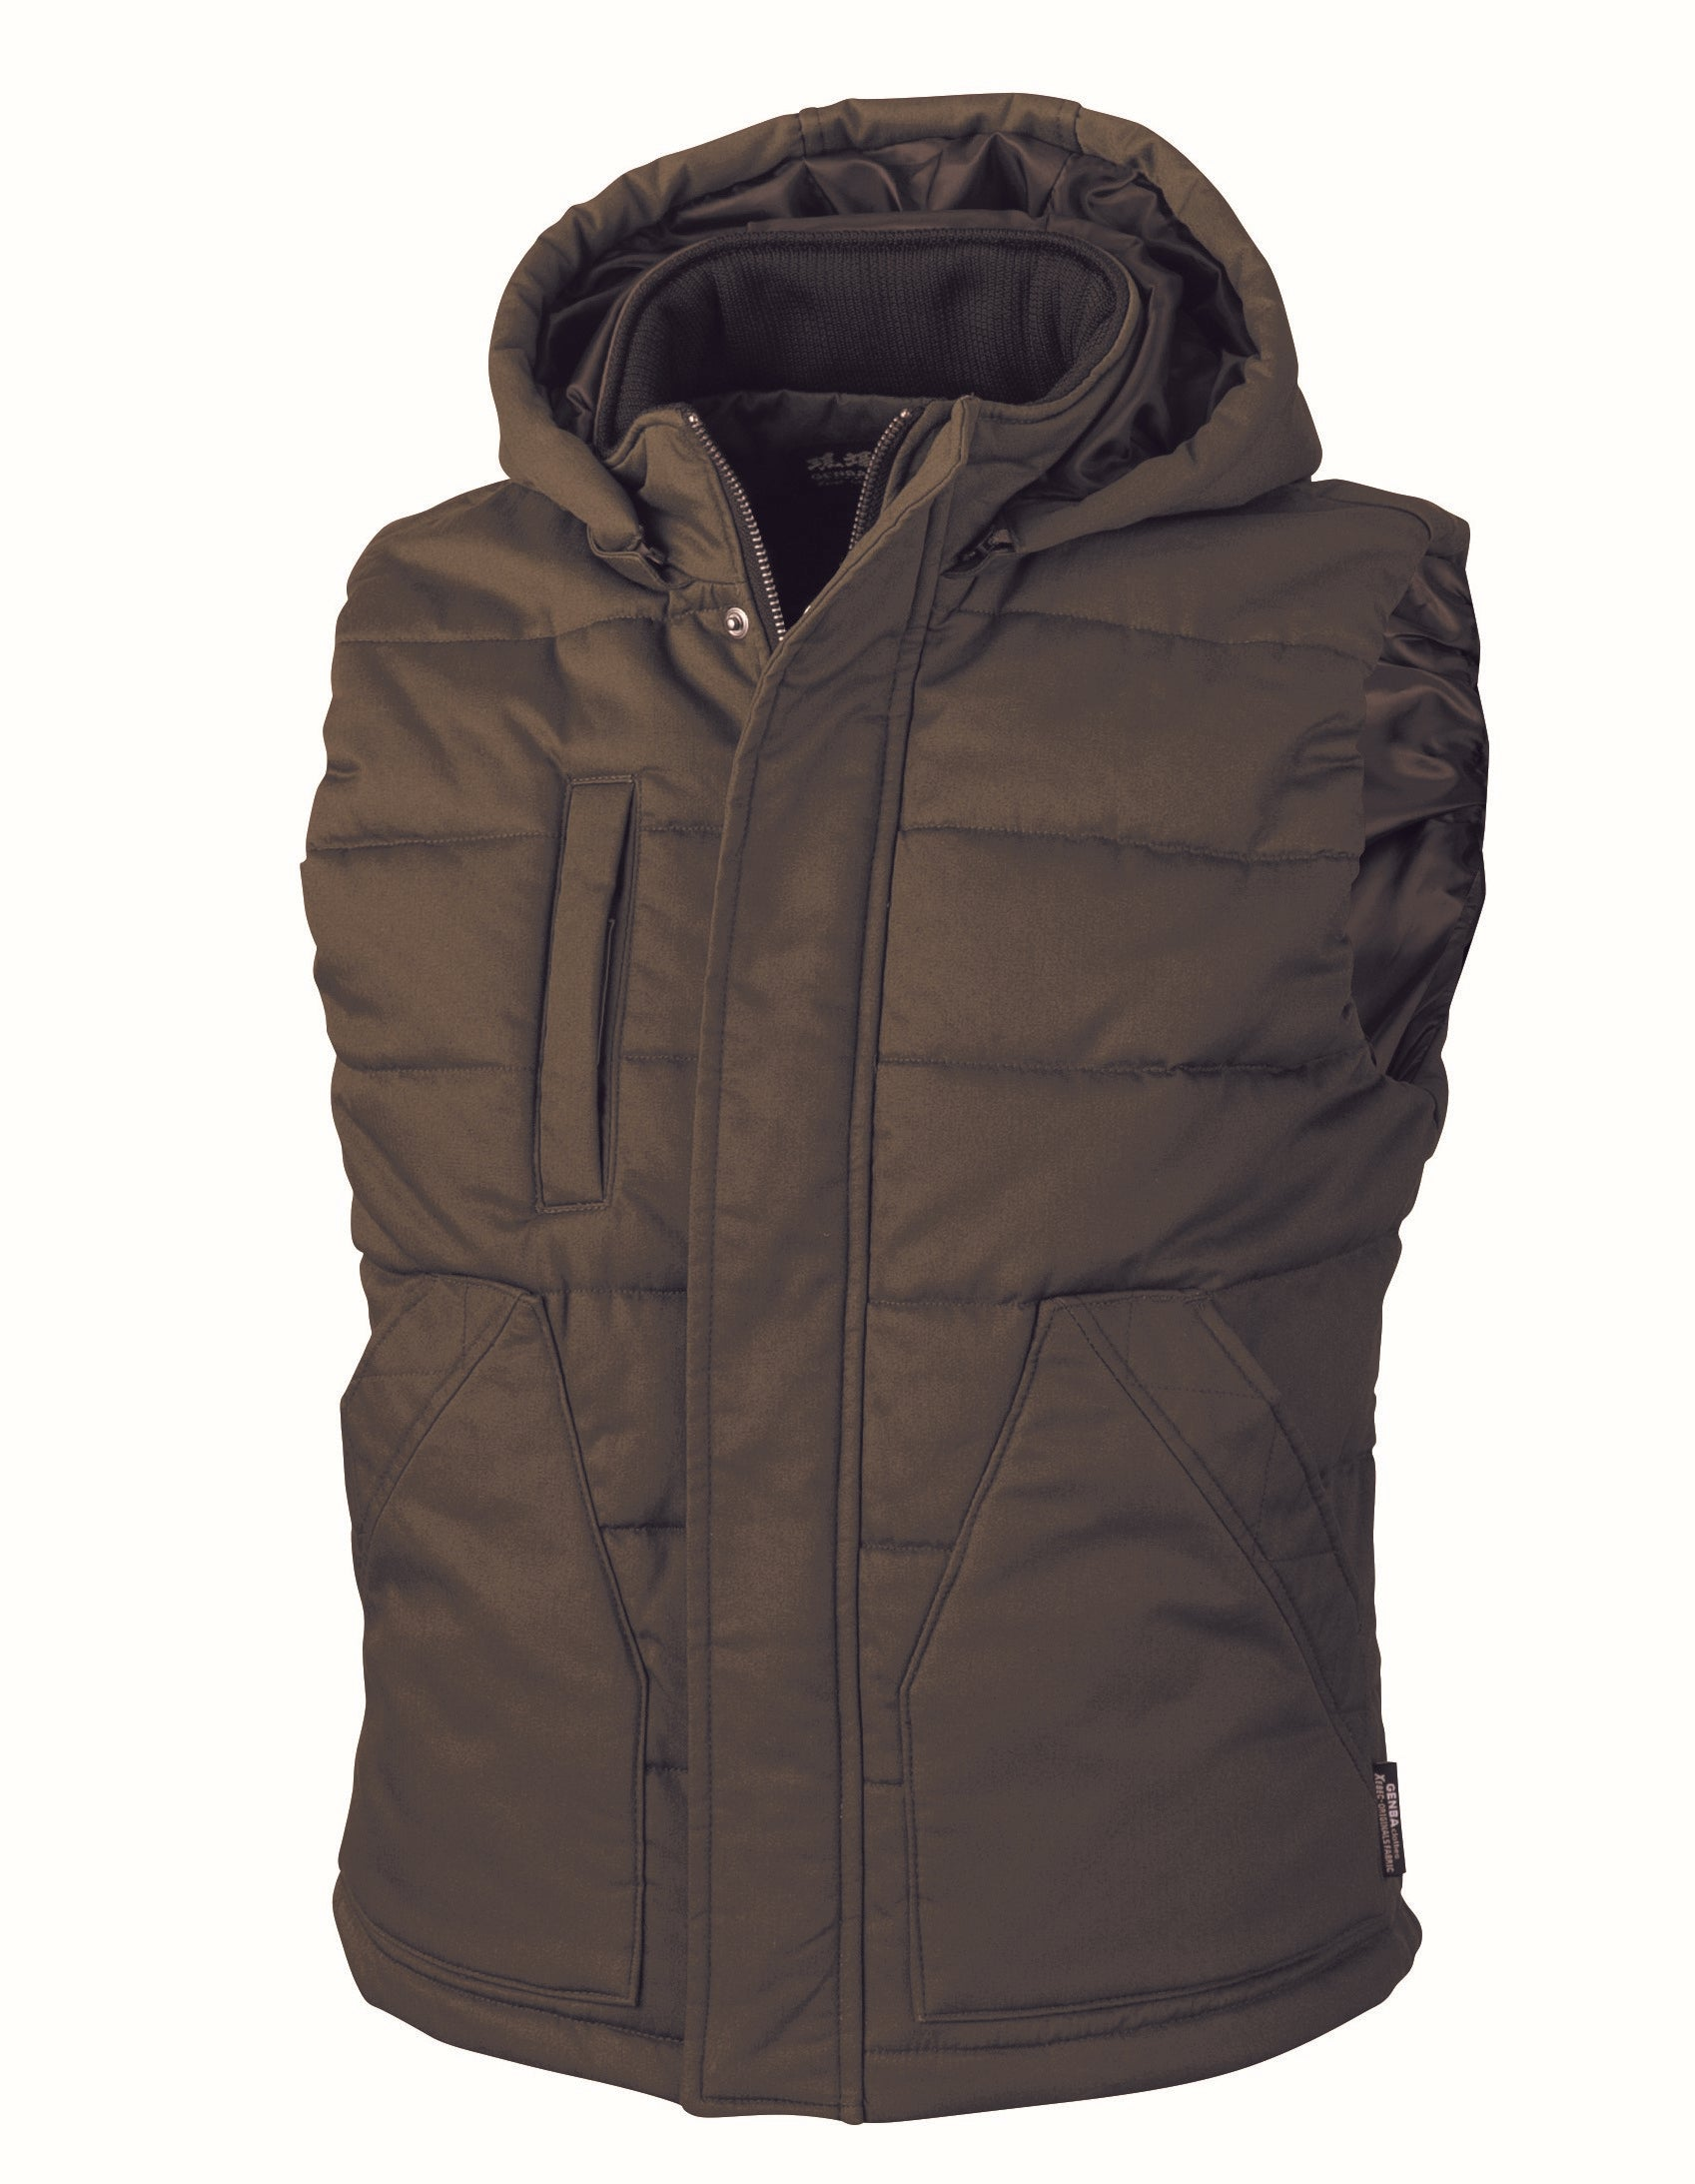 XEBEC 213 Winter clothes Vest